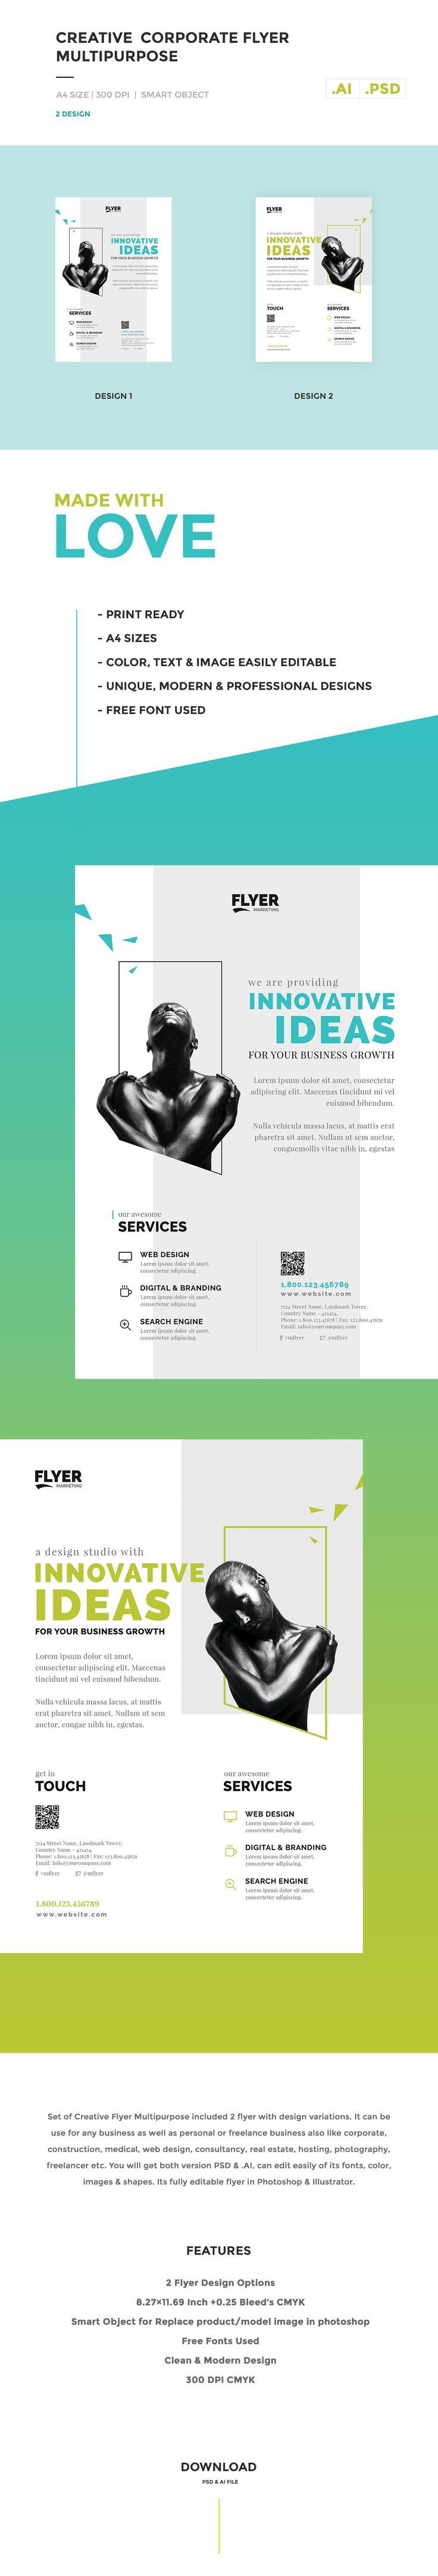 Creative / Corporate Flyer Multipurpose on Behance